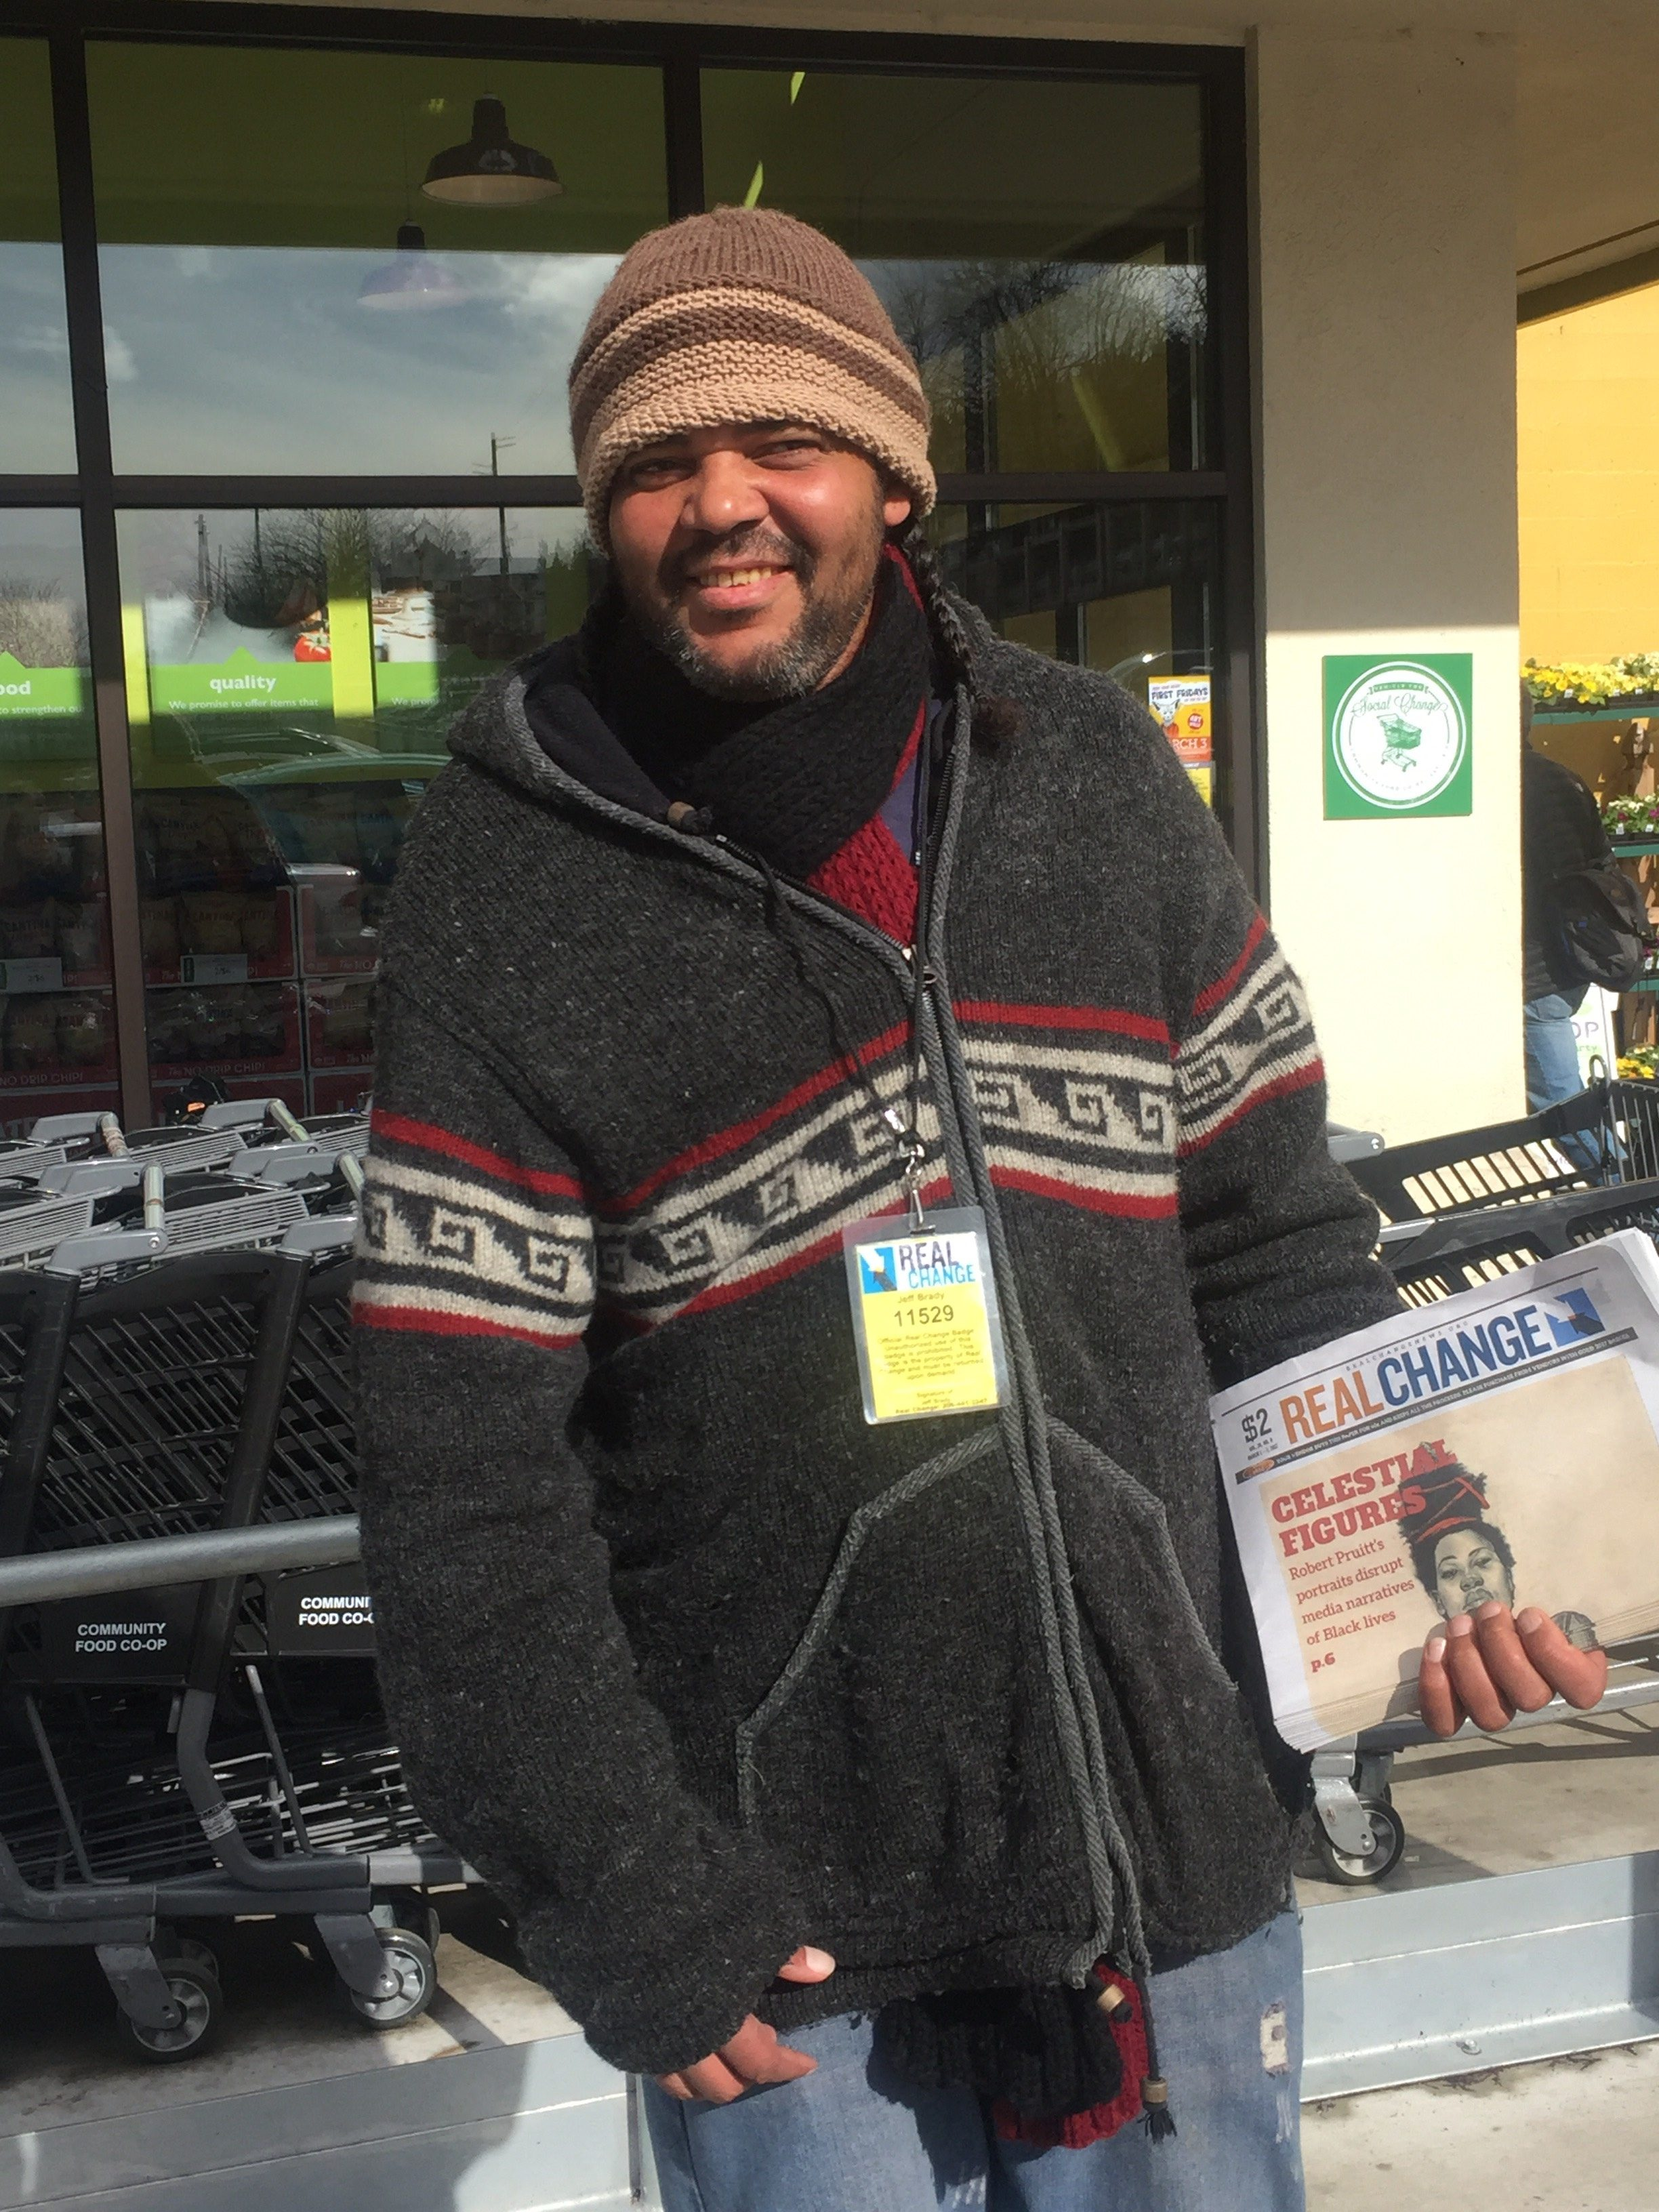 Jeremiah Crowder, longtime vendor, sells Real Change news outside the downtown Community Food Co-op. photo: Becky Spithill